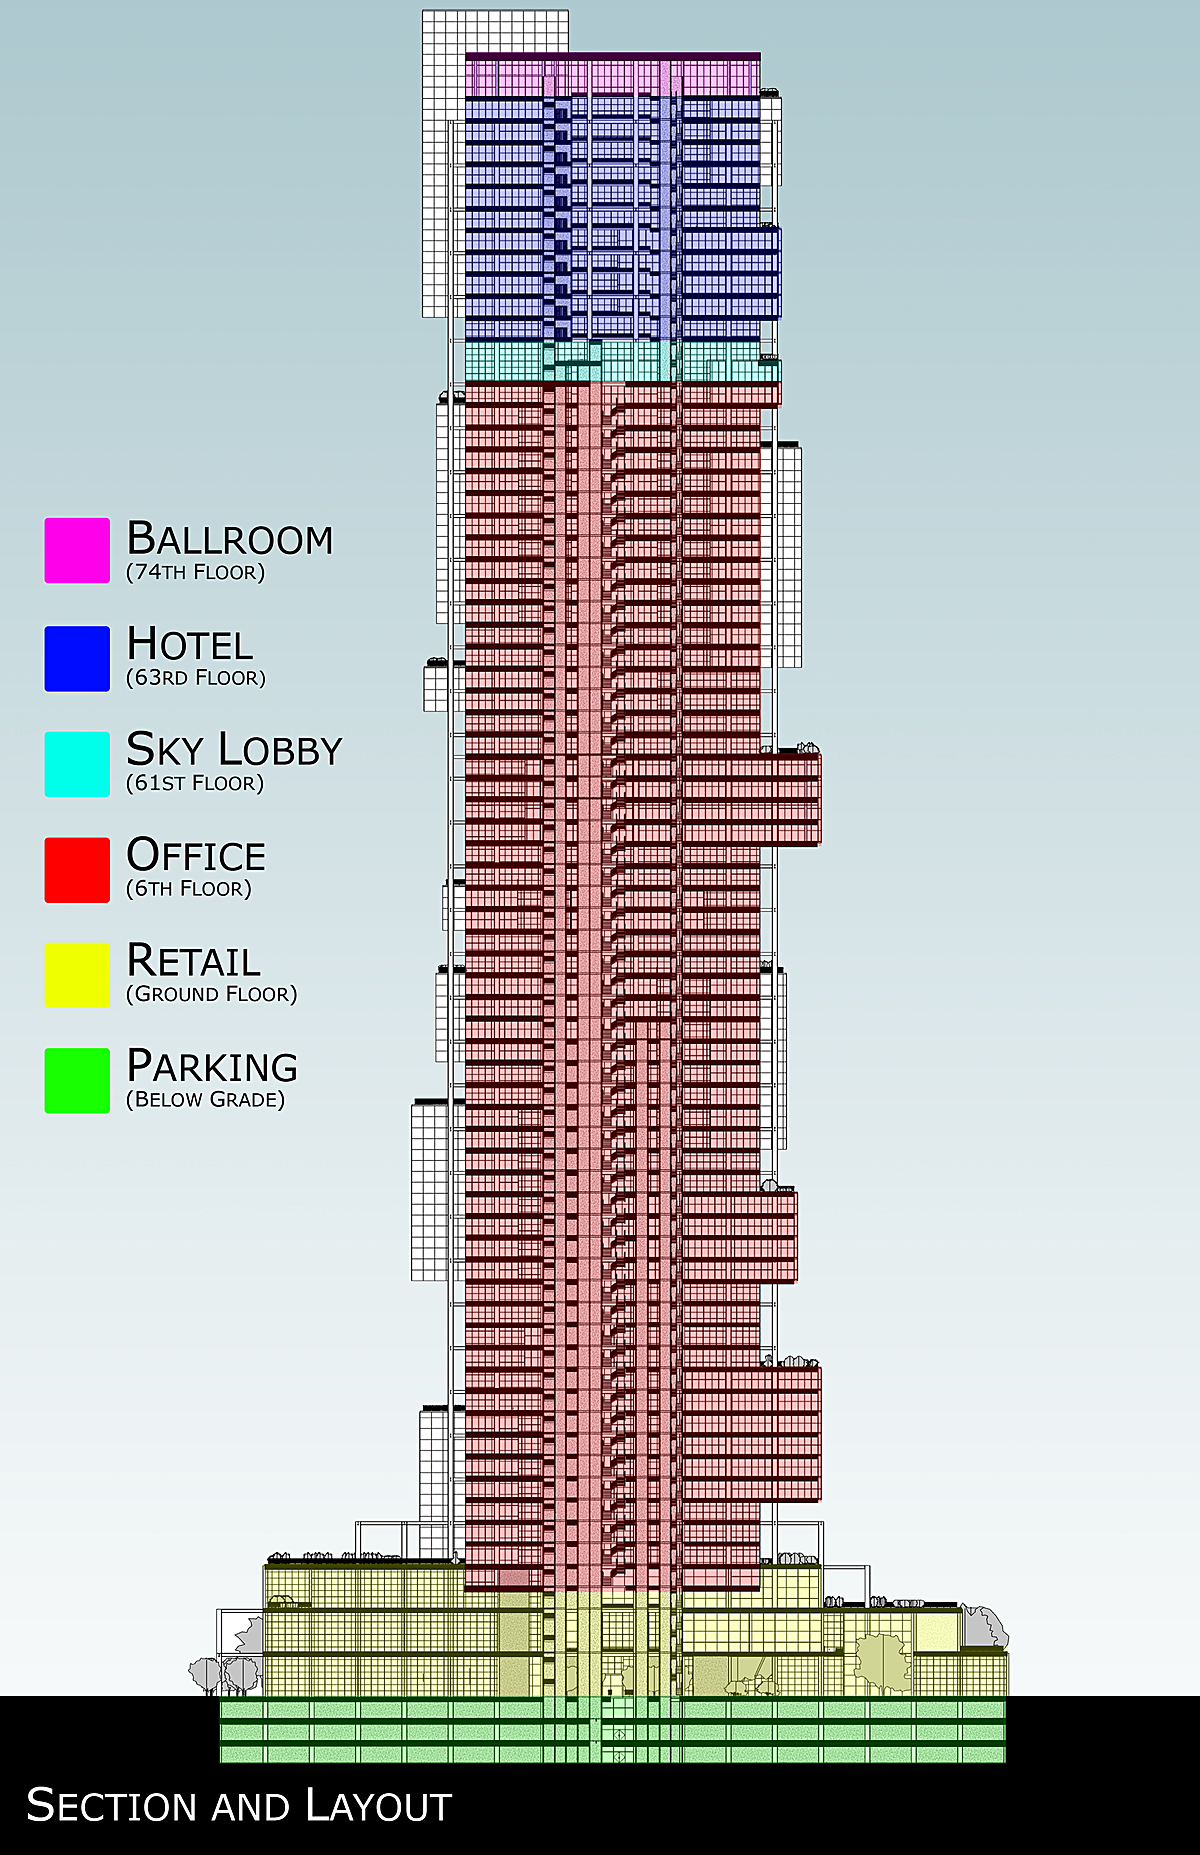 Section showing the breakdown of programmatic elements of the building